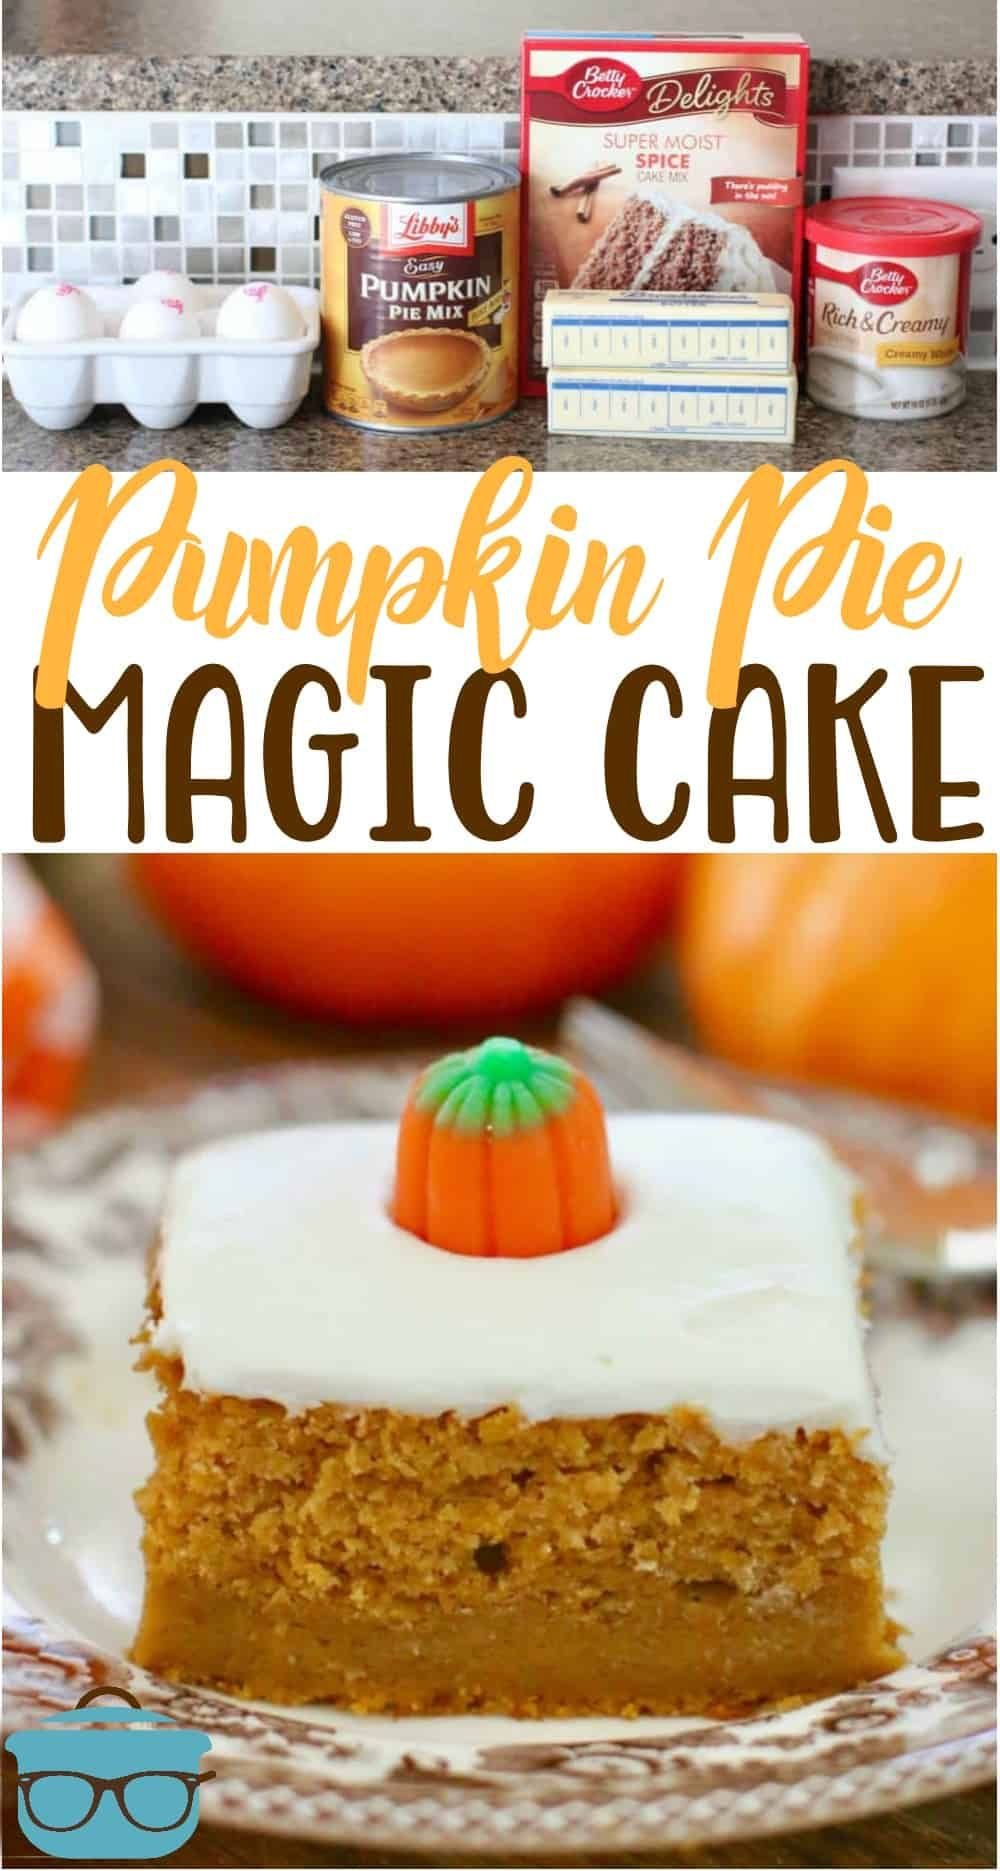 PUMPKIN PIE MAGIC CAKE (+Video) | The Country Cook